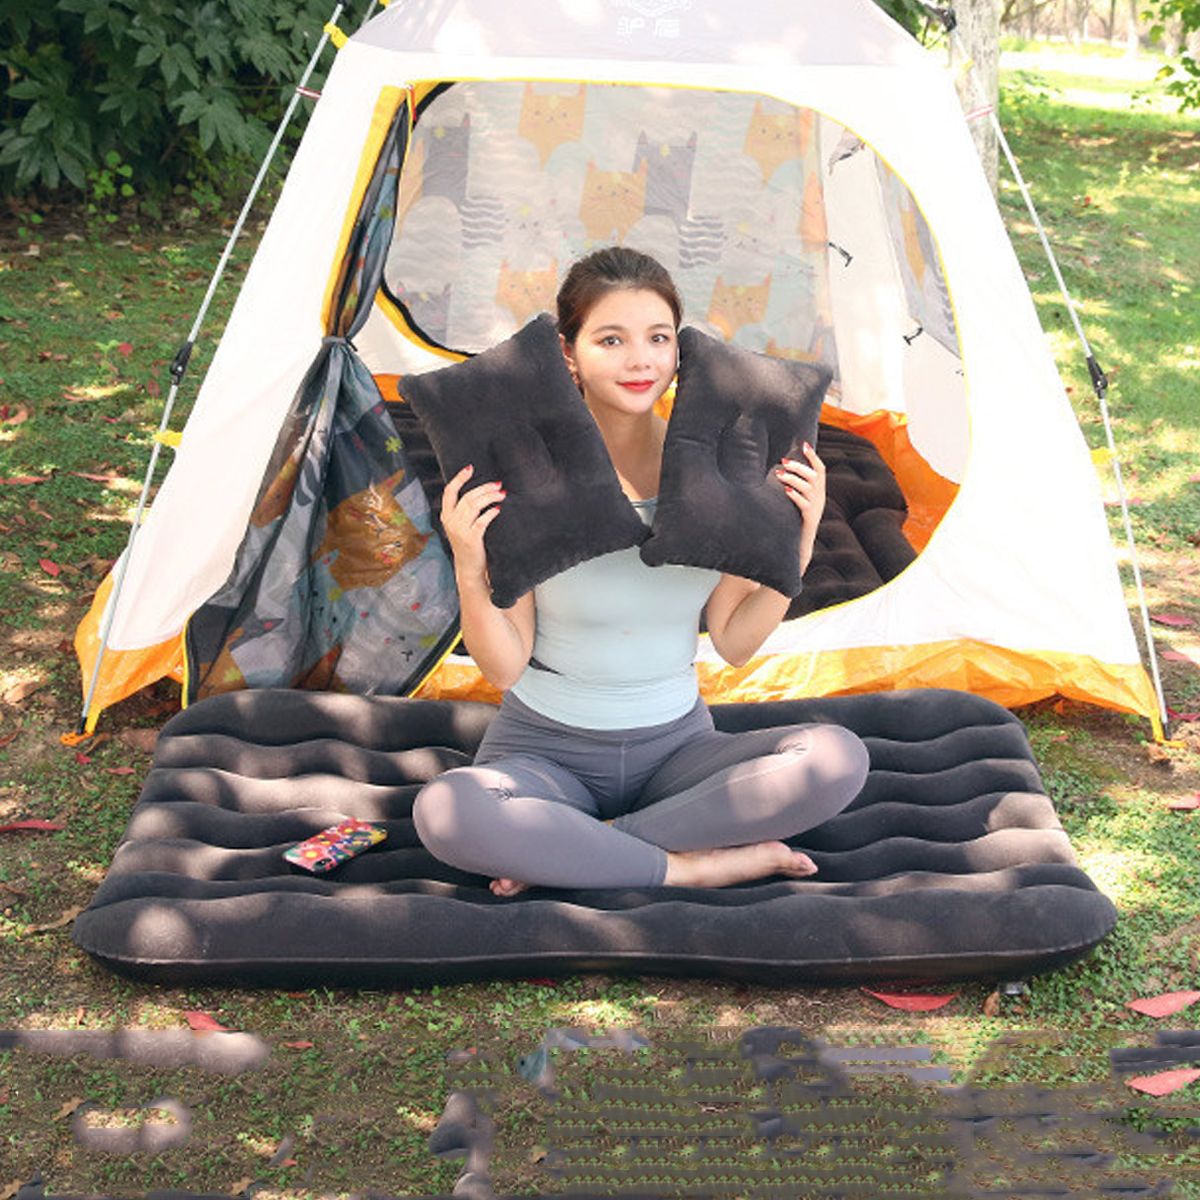 Car Inflatable Mat Outdoor Traveling Air Mattresses Camping Folding Sleeping Bed with Pillows and Pump